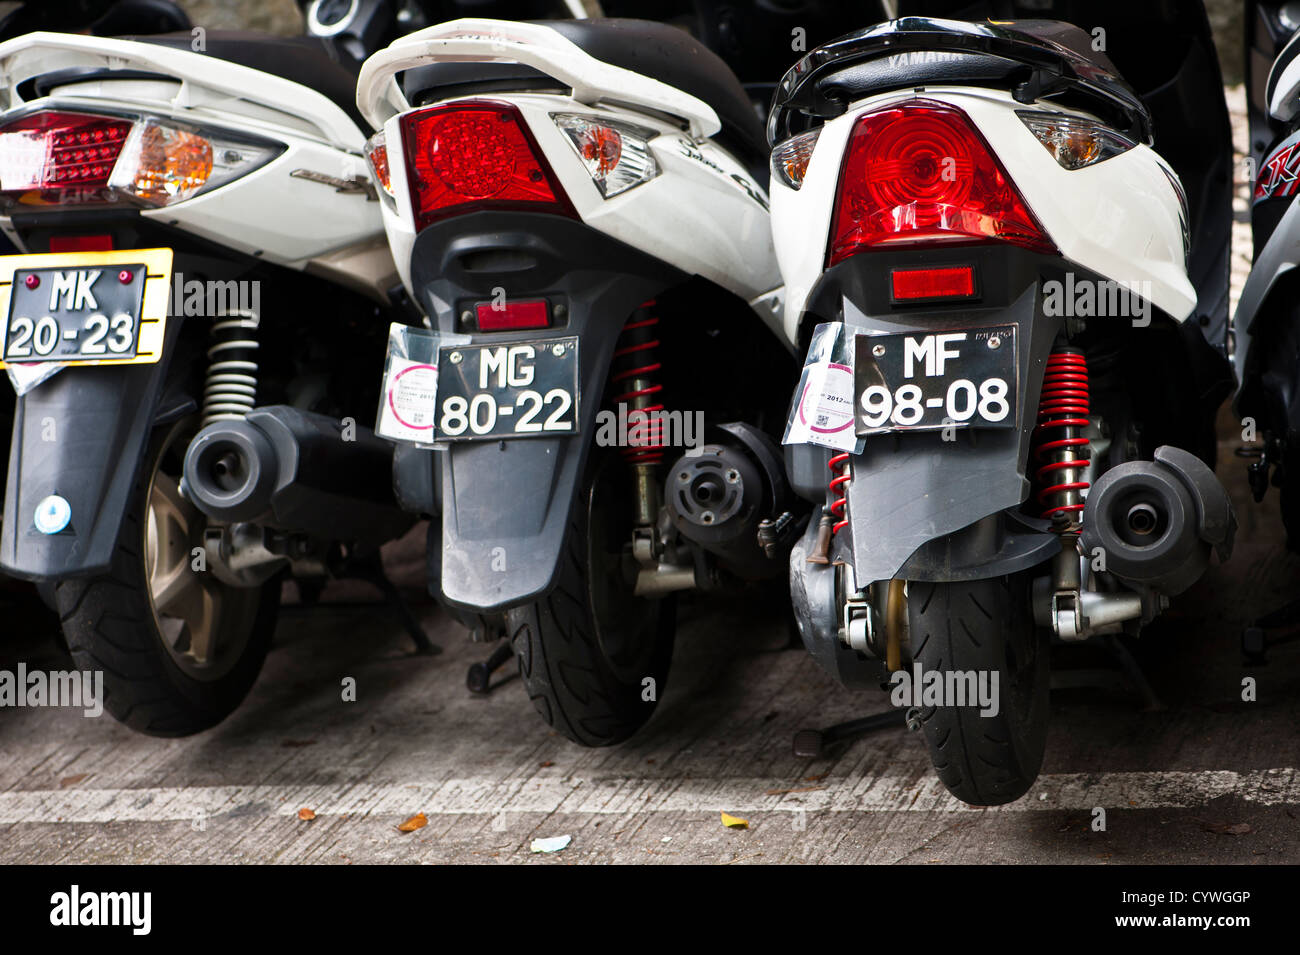 Scooters parked together in Macau - Stock Image